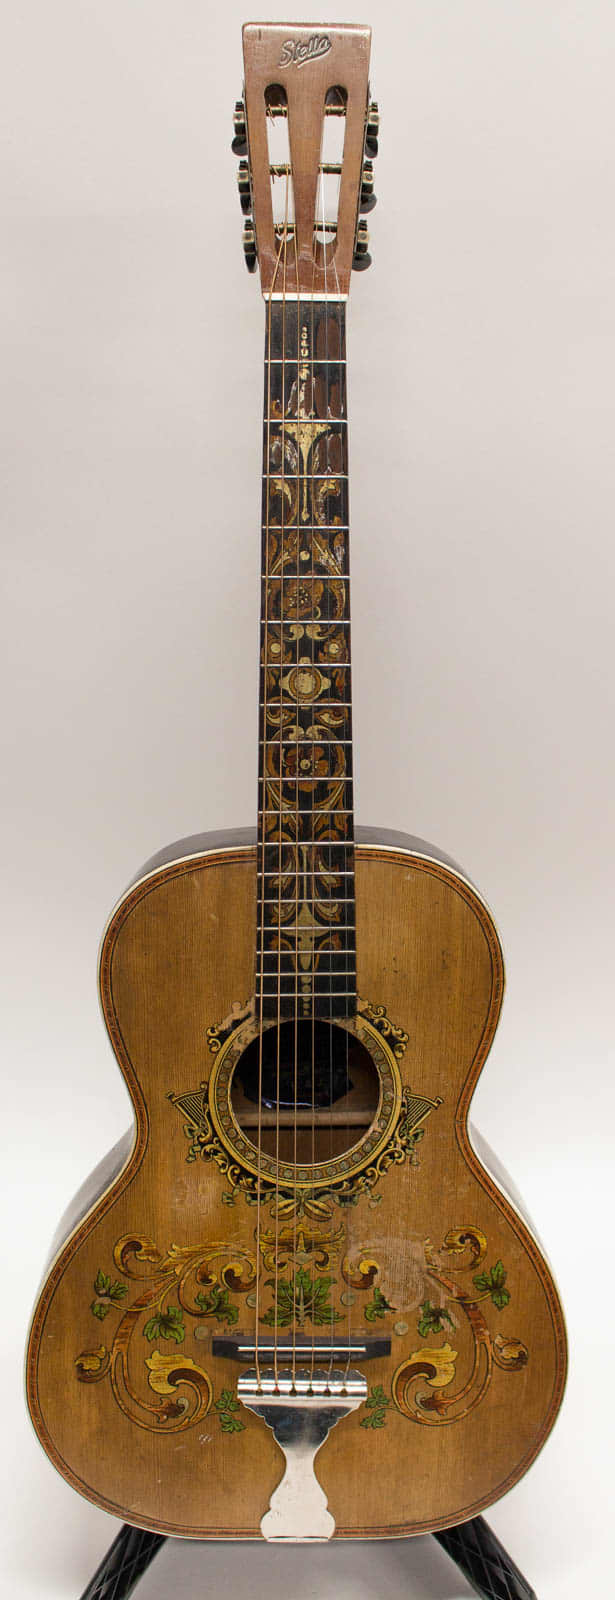 1912 vintage stella decalcomania concert acoustic guitar with reverb. Black Bedroom Furniture Sets. Home Design Ideas